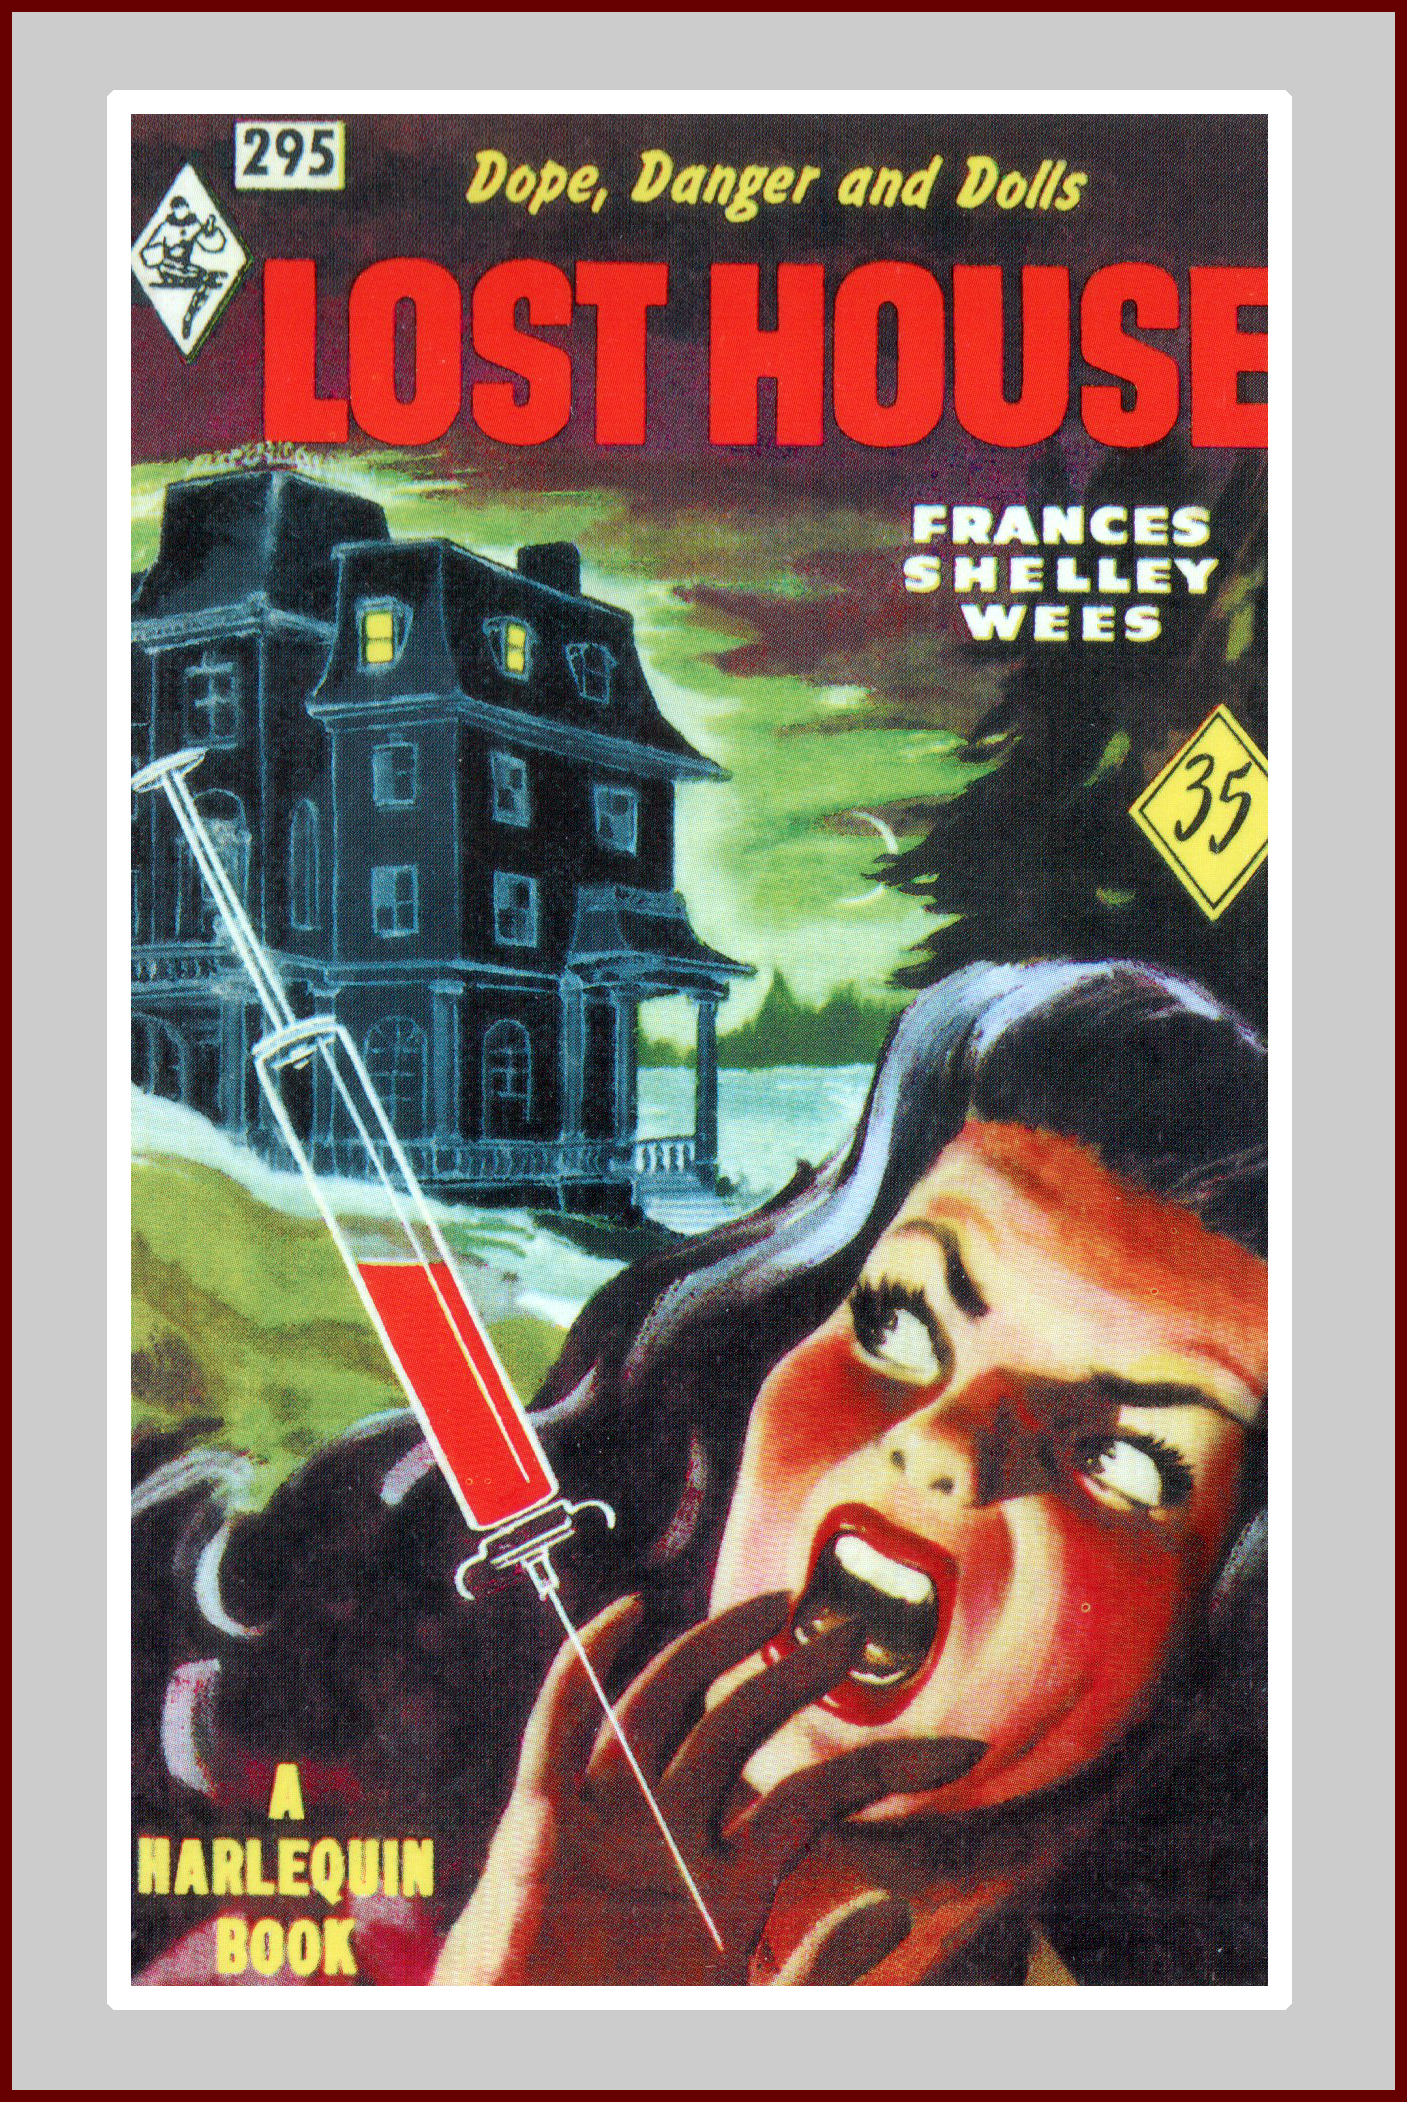 Lost house, pulp fiction novel